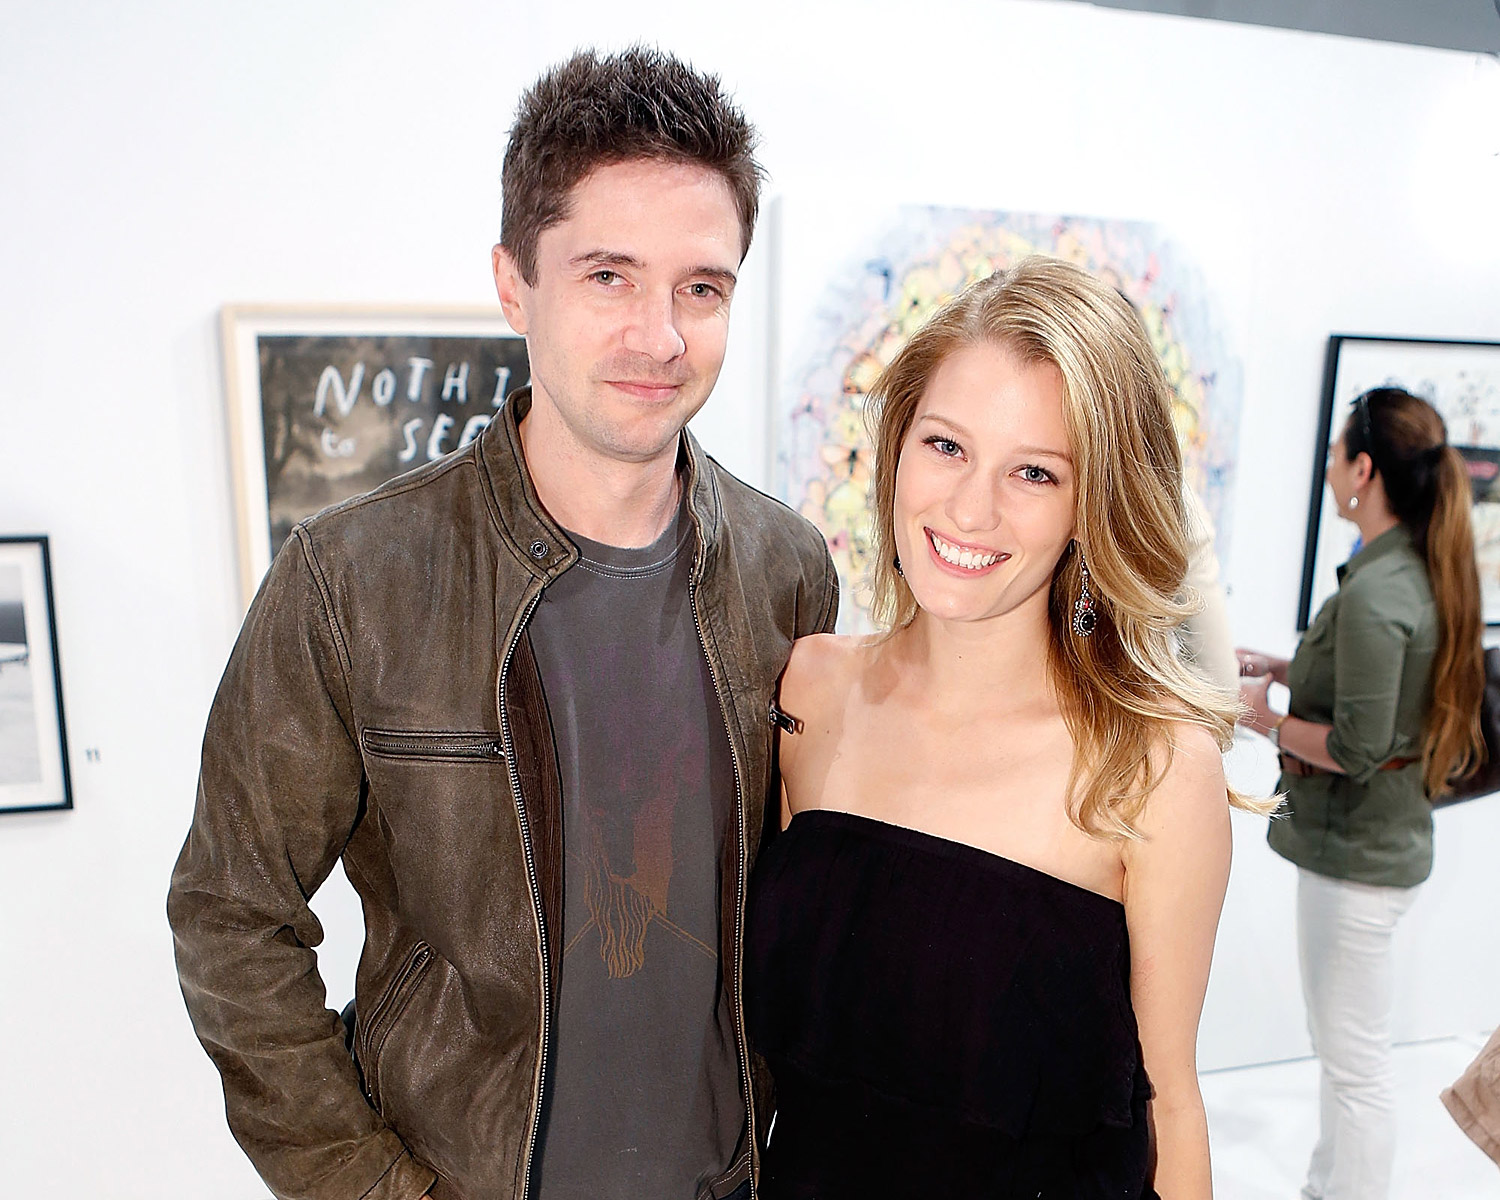 Topher Grace and his wife Ashley Hinshaw are standing close to each other as they pose for the photograph. Ashley is wearing a strapless black dress and Topher is wearing leather jacket.